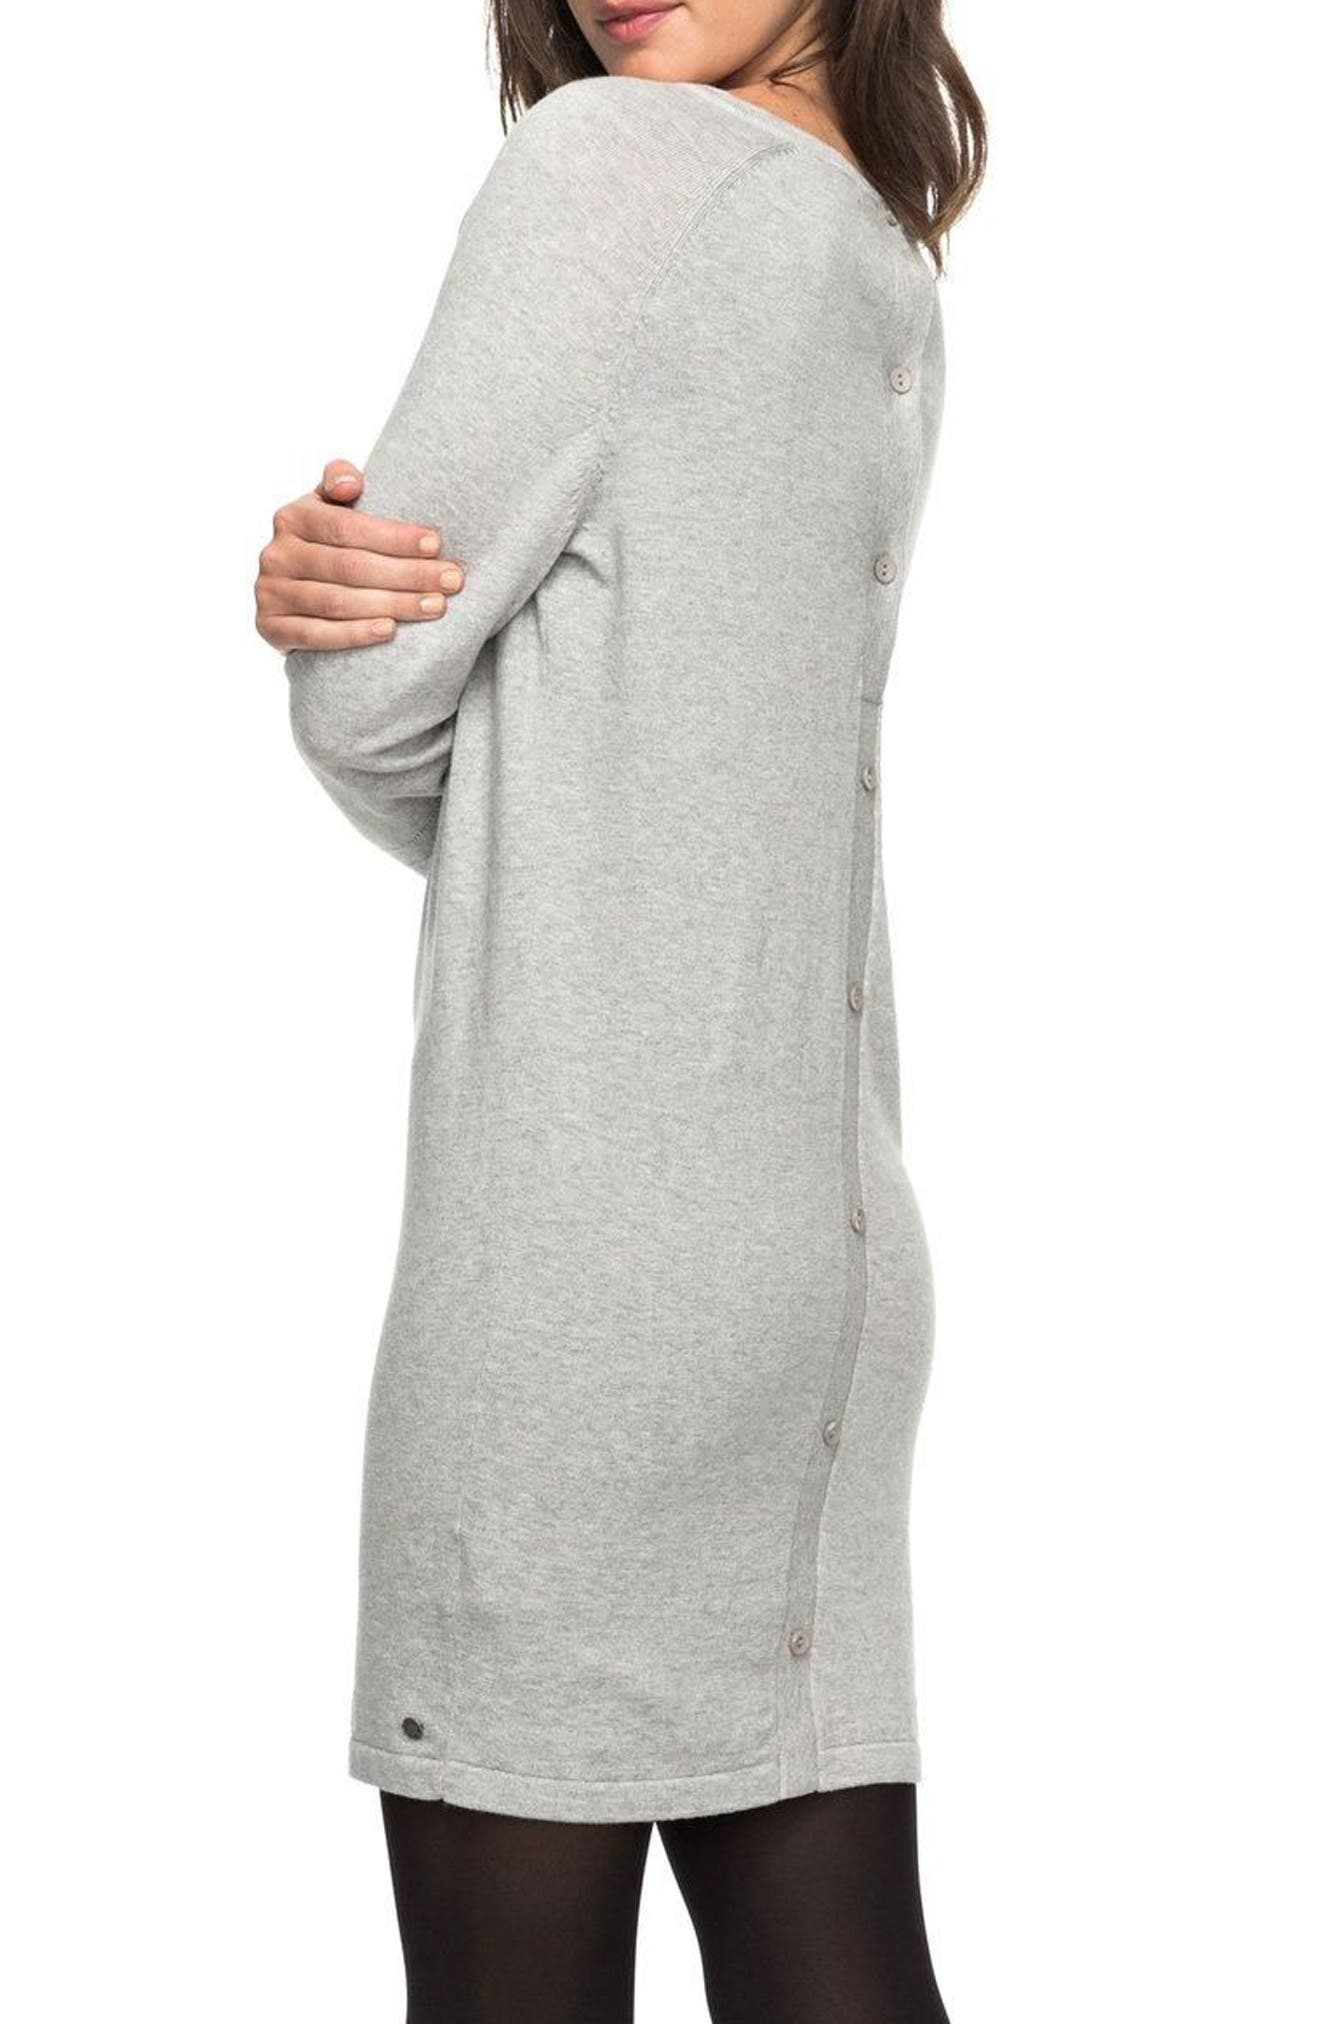 Winter Story Sweater Dress,                             Alternate thumbnail 3, color,                             037